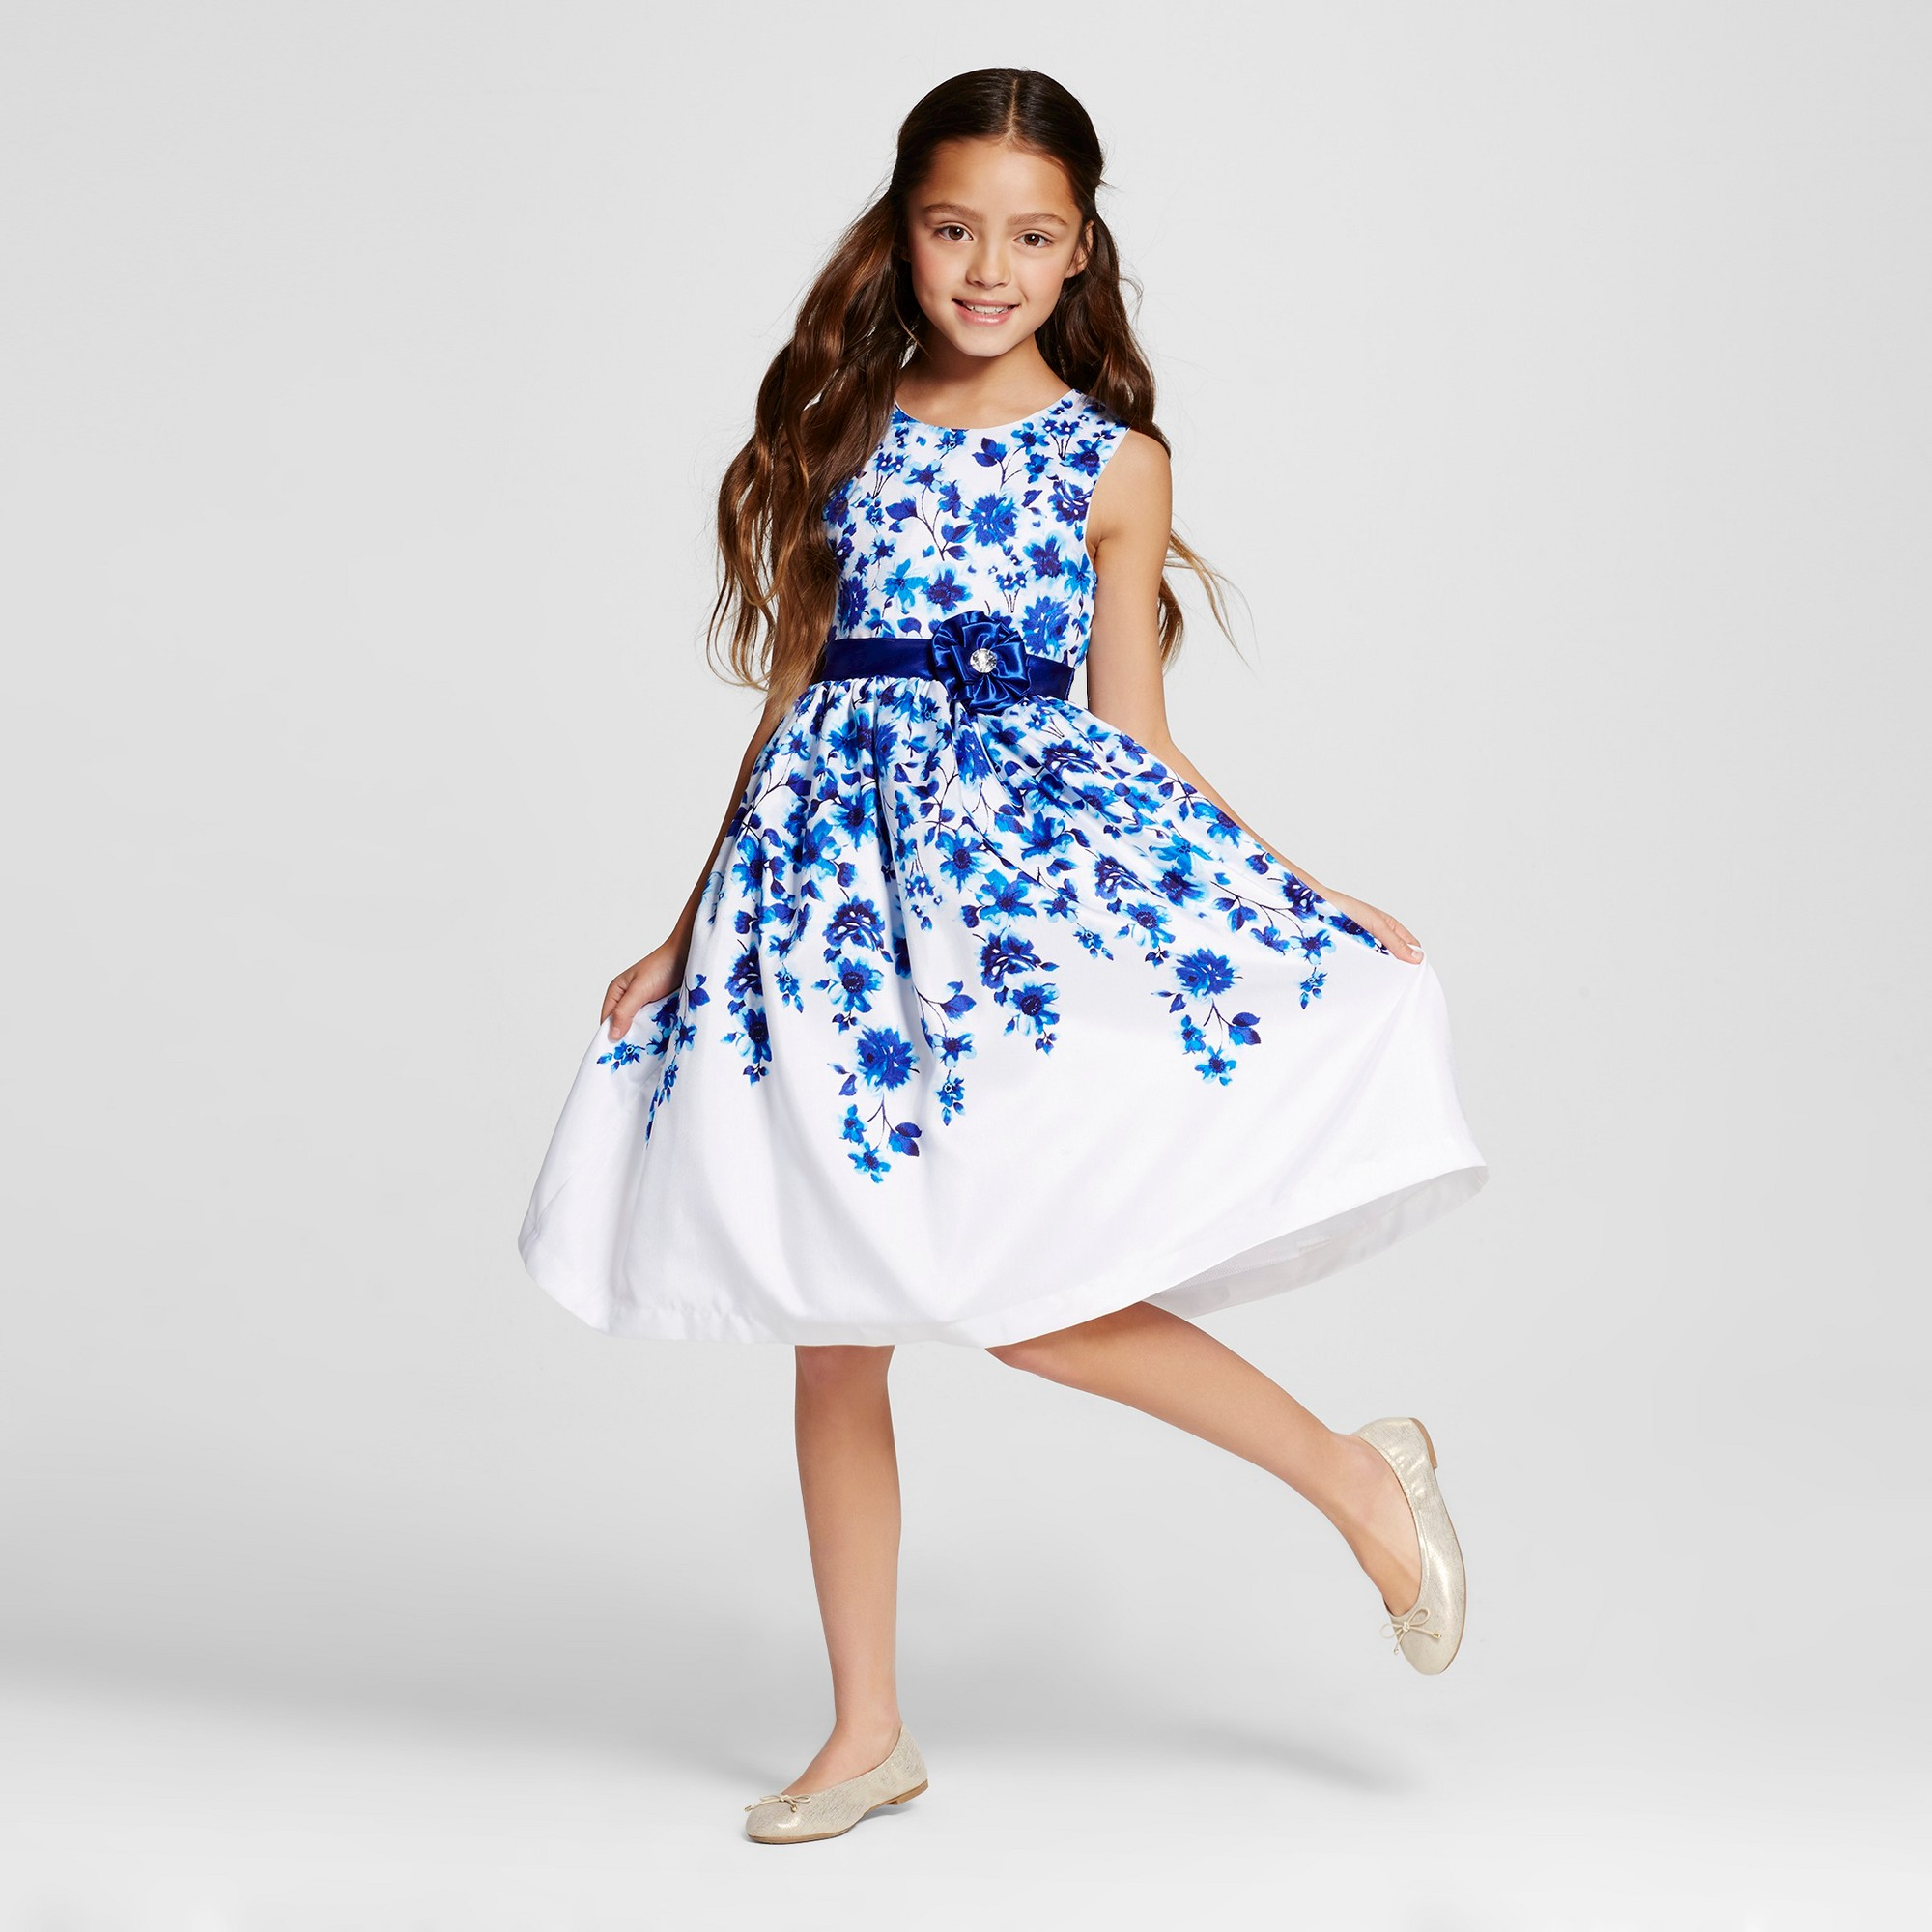 314e6cdfcf3 Girls  Young Hearts A-Line Floral Dress - White 12